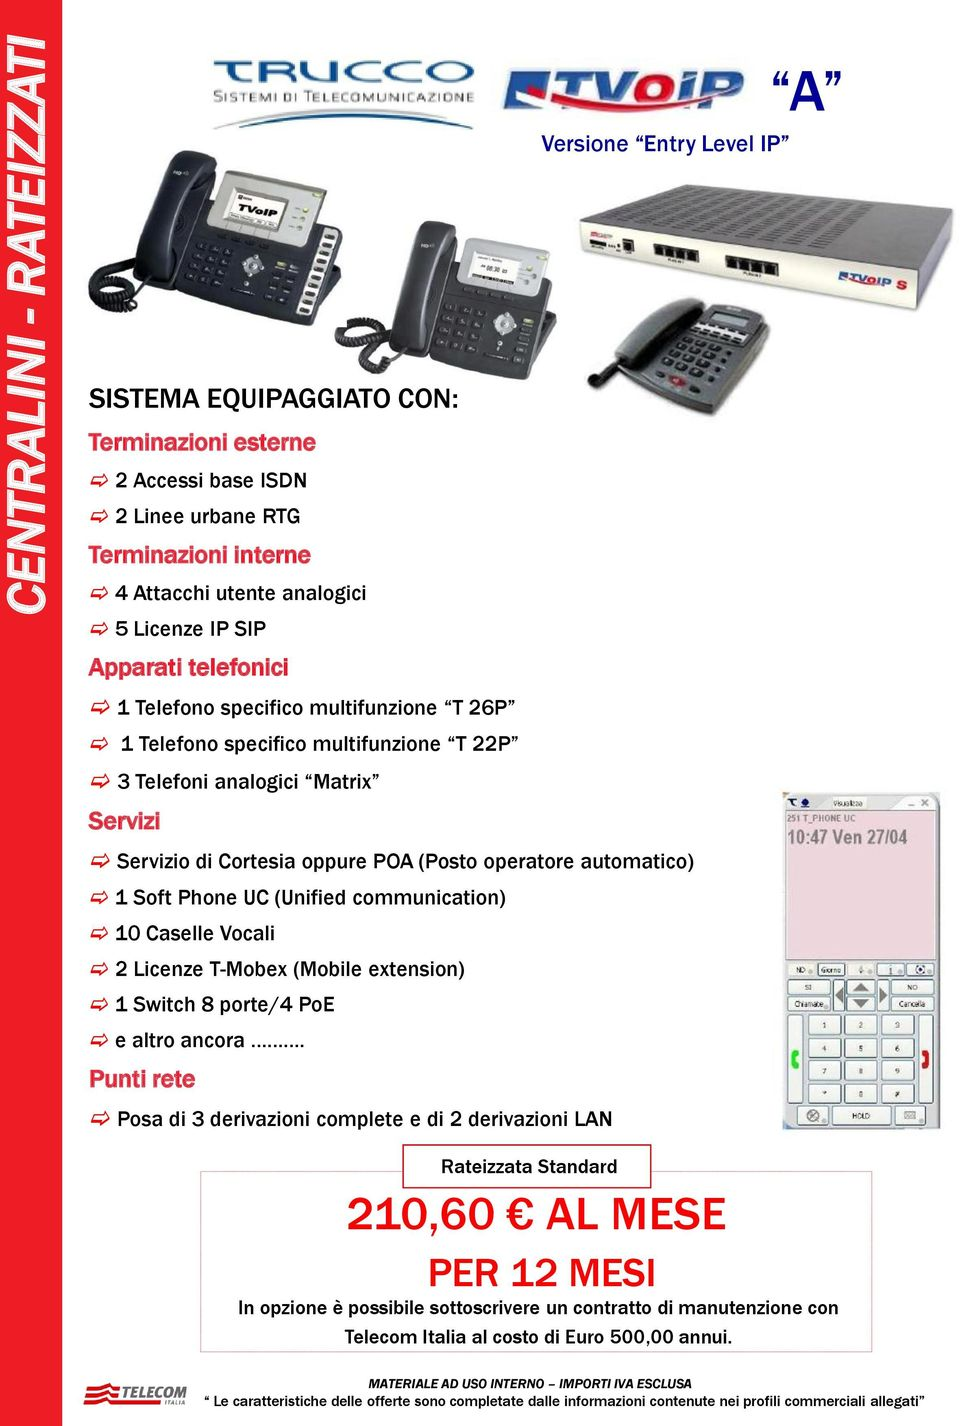 automatico) 1 Soft Phone UC (Unified communication) 10 Caselle Vocali 2 Licenze T-Mobex (Mobile extension) 1 Switch 8 porte/4 PoE